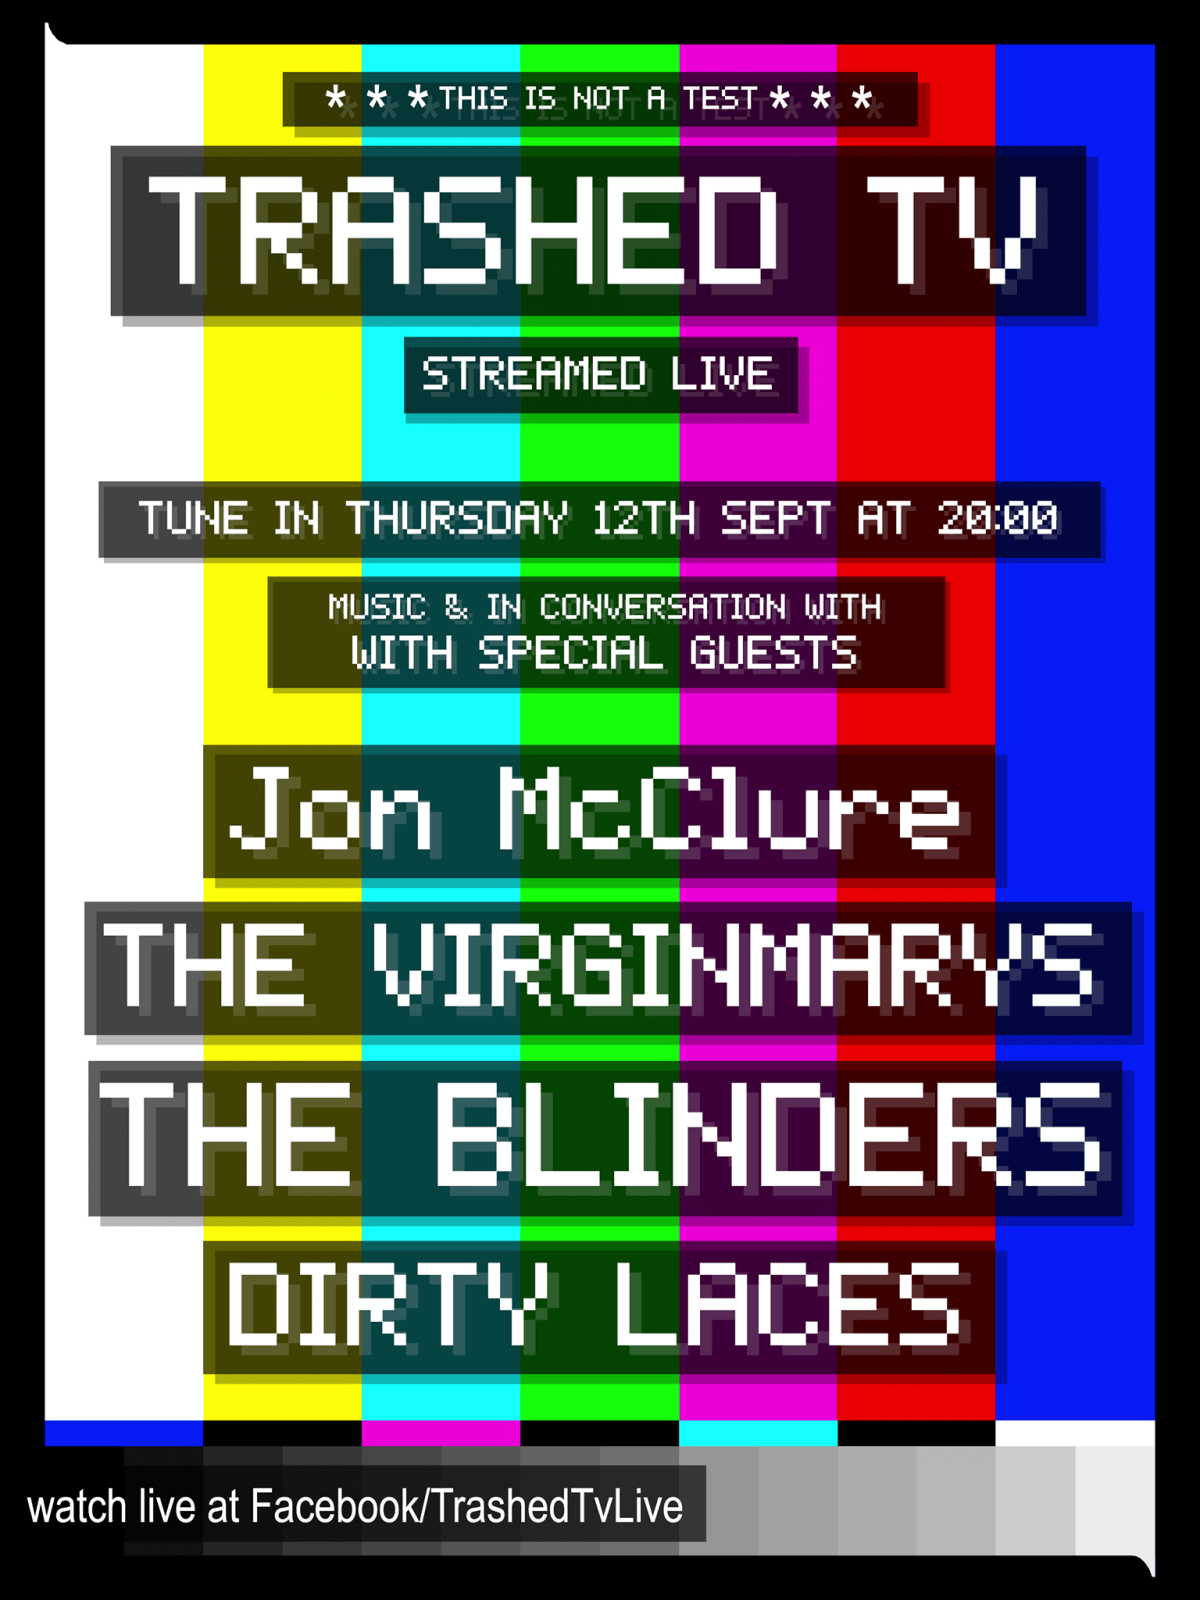 Our friends at Trashed TV are LIVE tonight from 8pm......